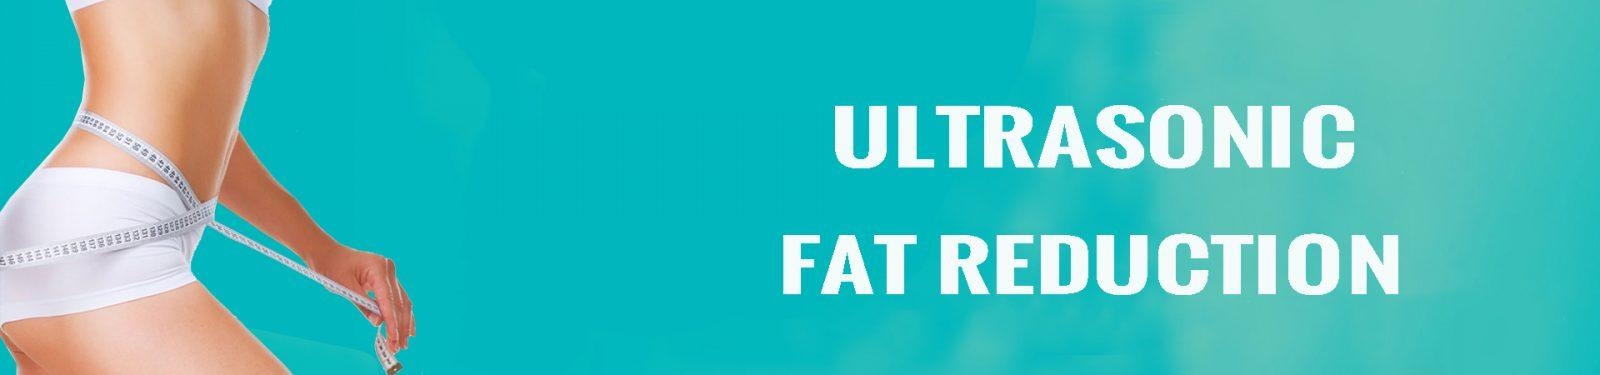 ULTRASONIC FAT REDUCTION